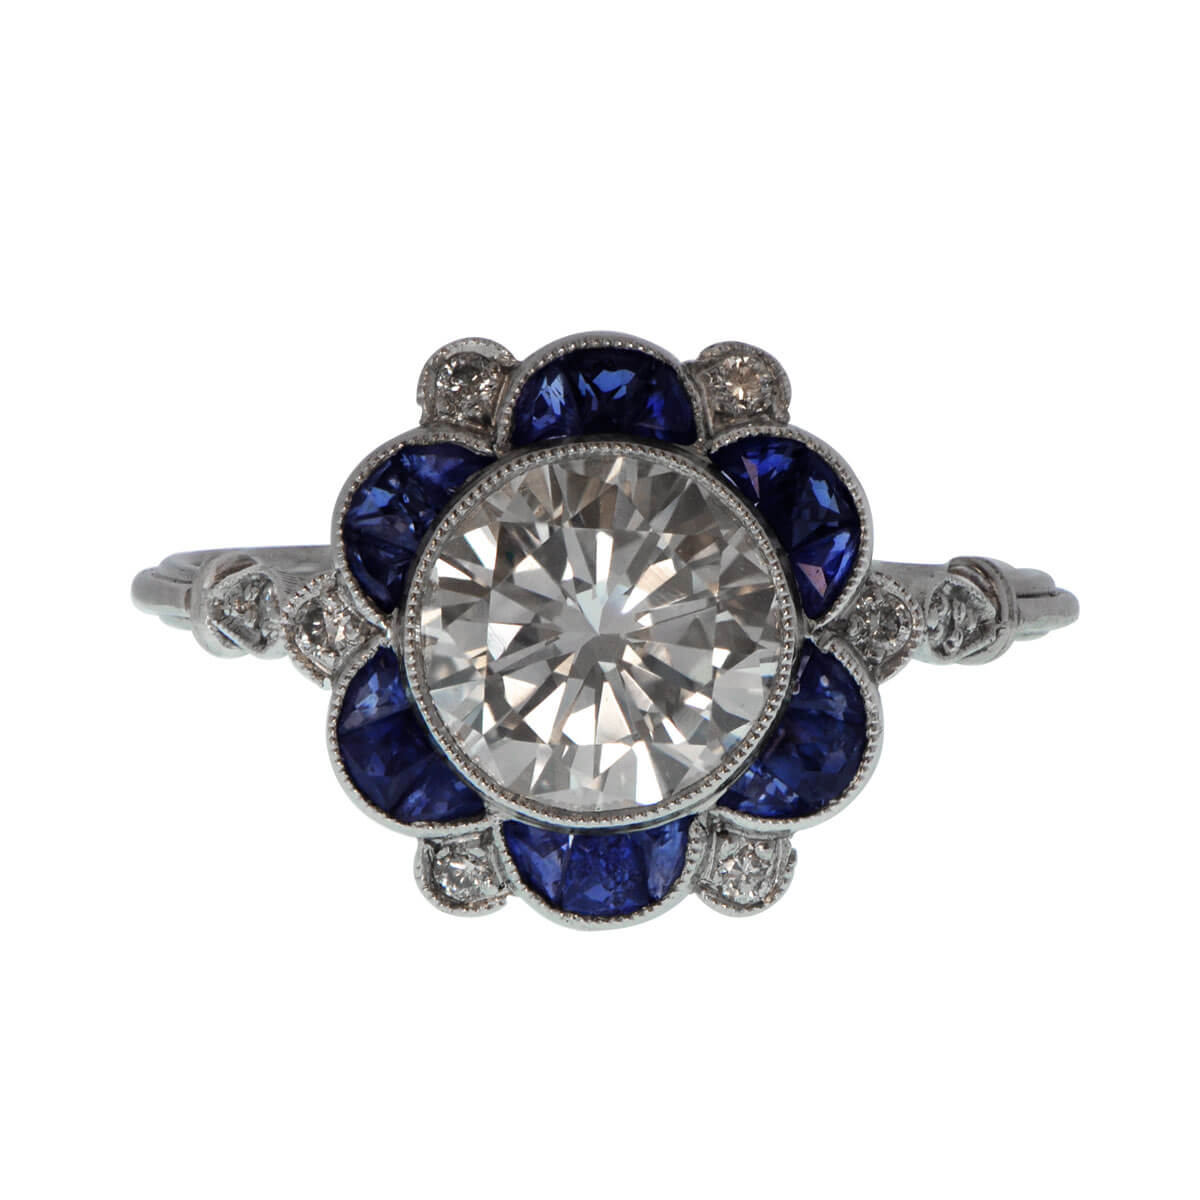 kelly jewelers pin by weddings bands freedman on sapphire meghan diamond of pinterest and boston band